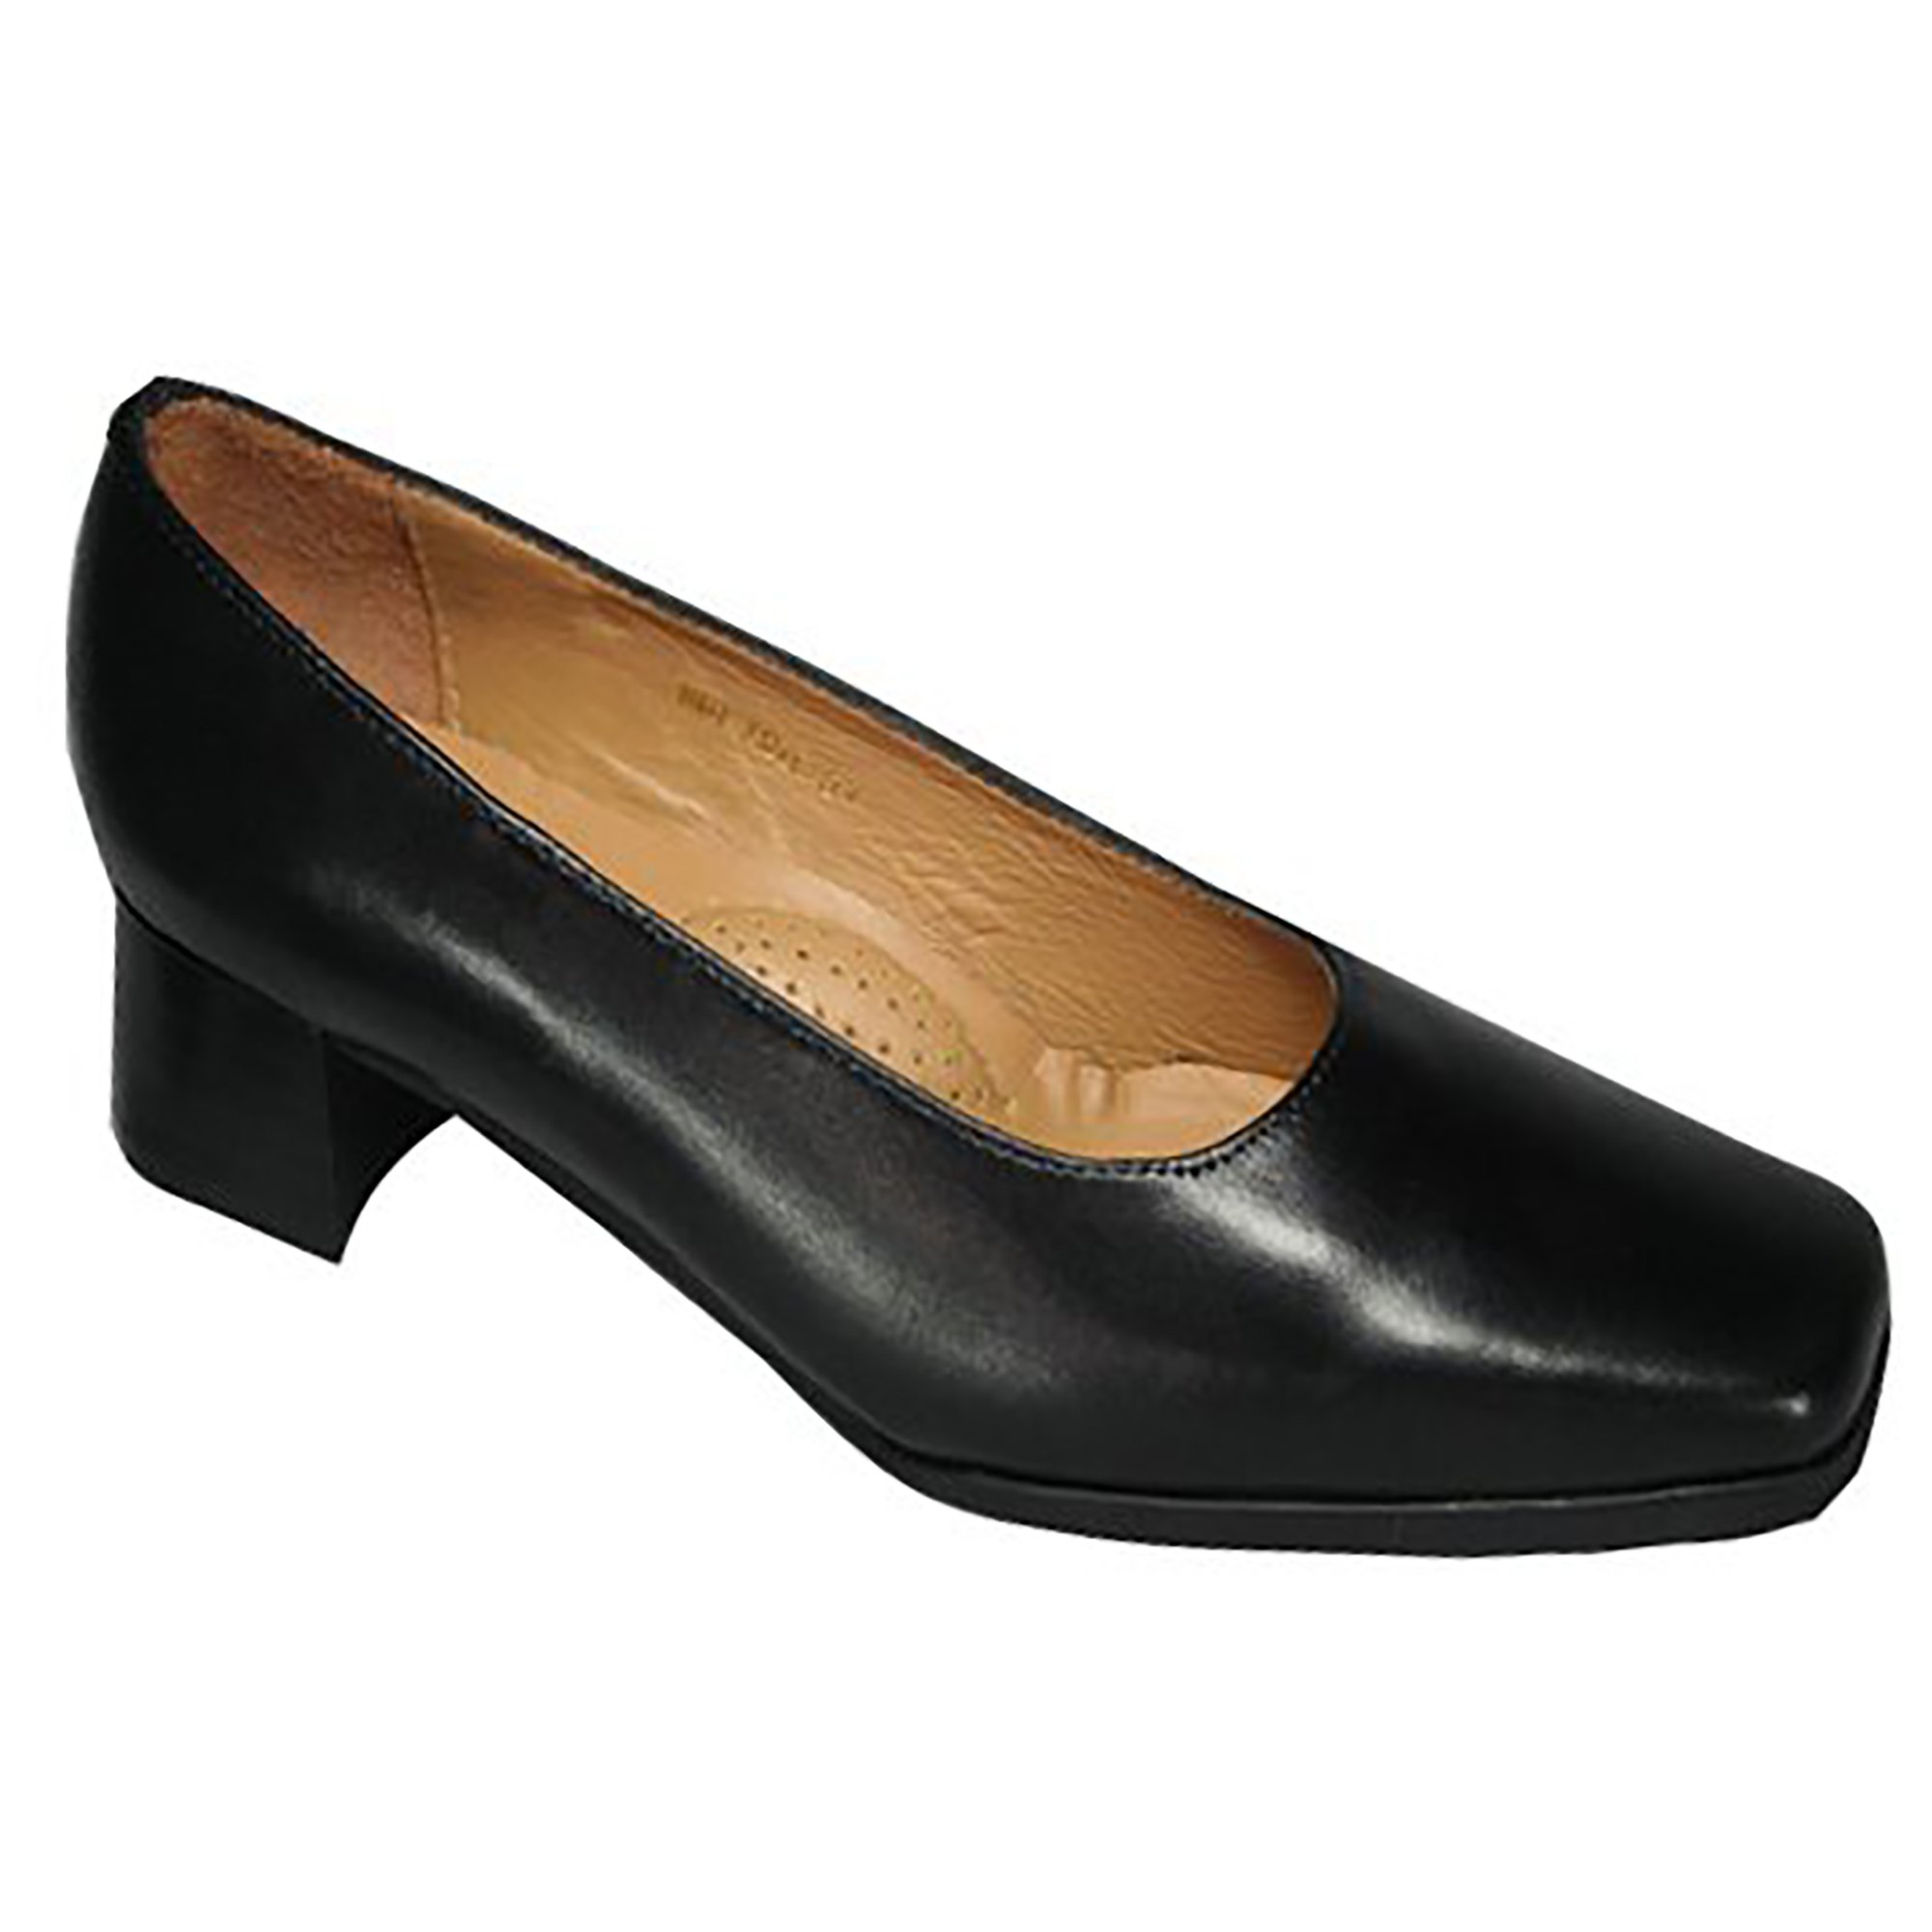 Amblers Walford Ladies Leather Court/Womens Shoes (11 US) (Black) by Amblers